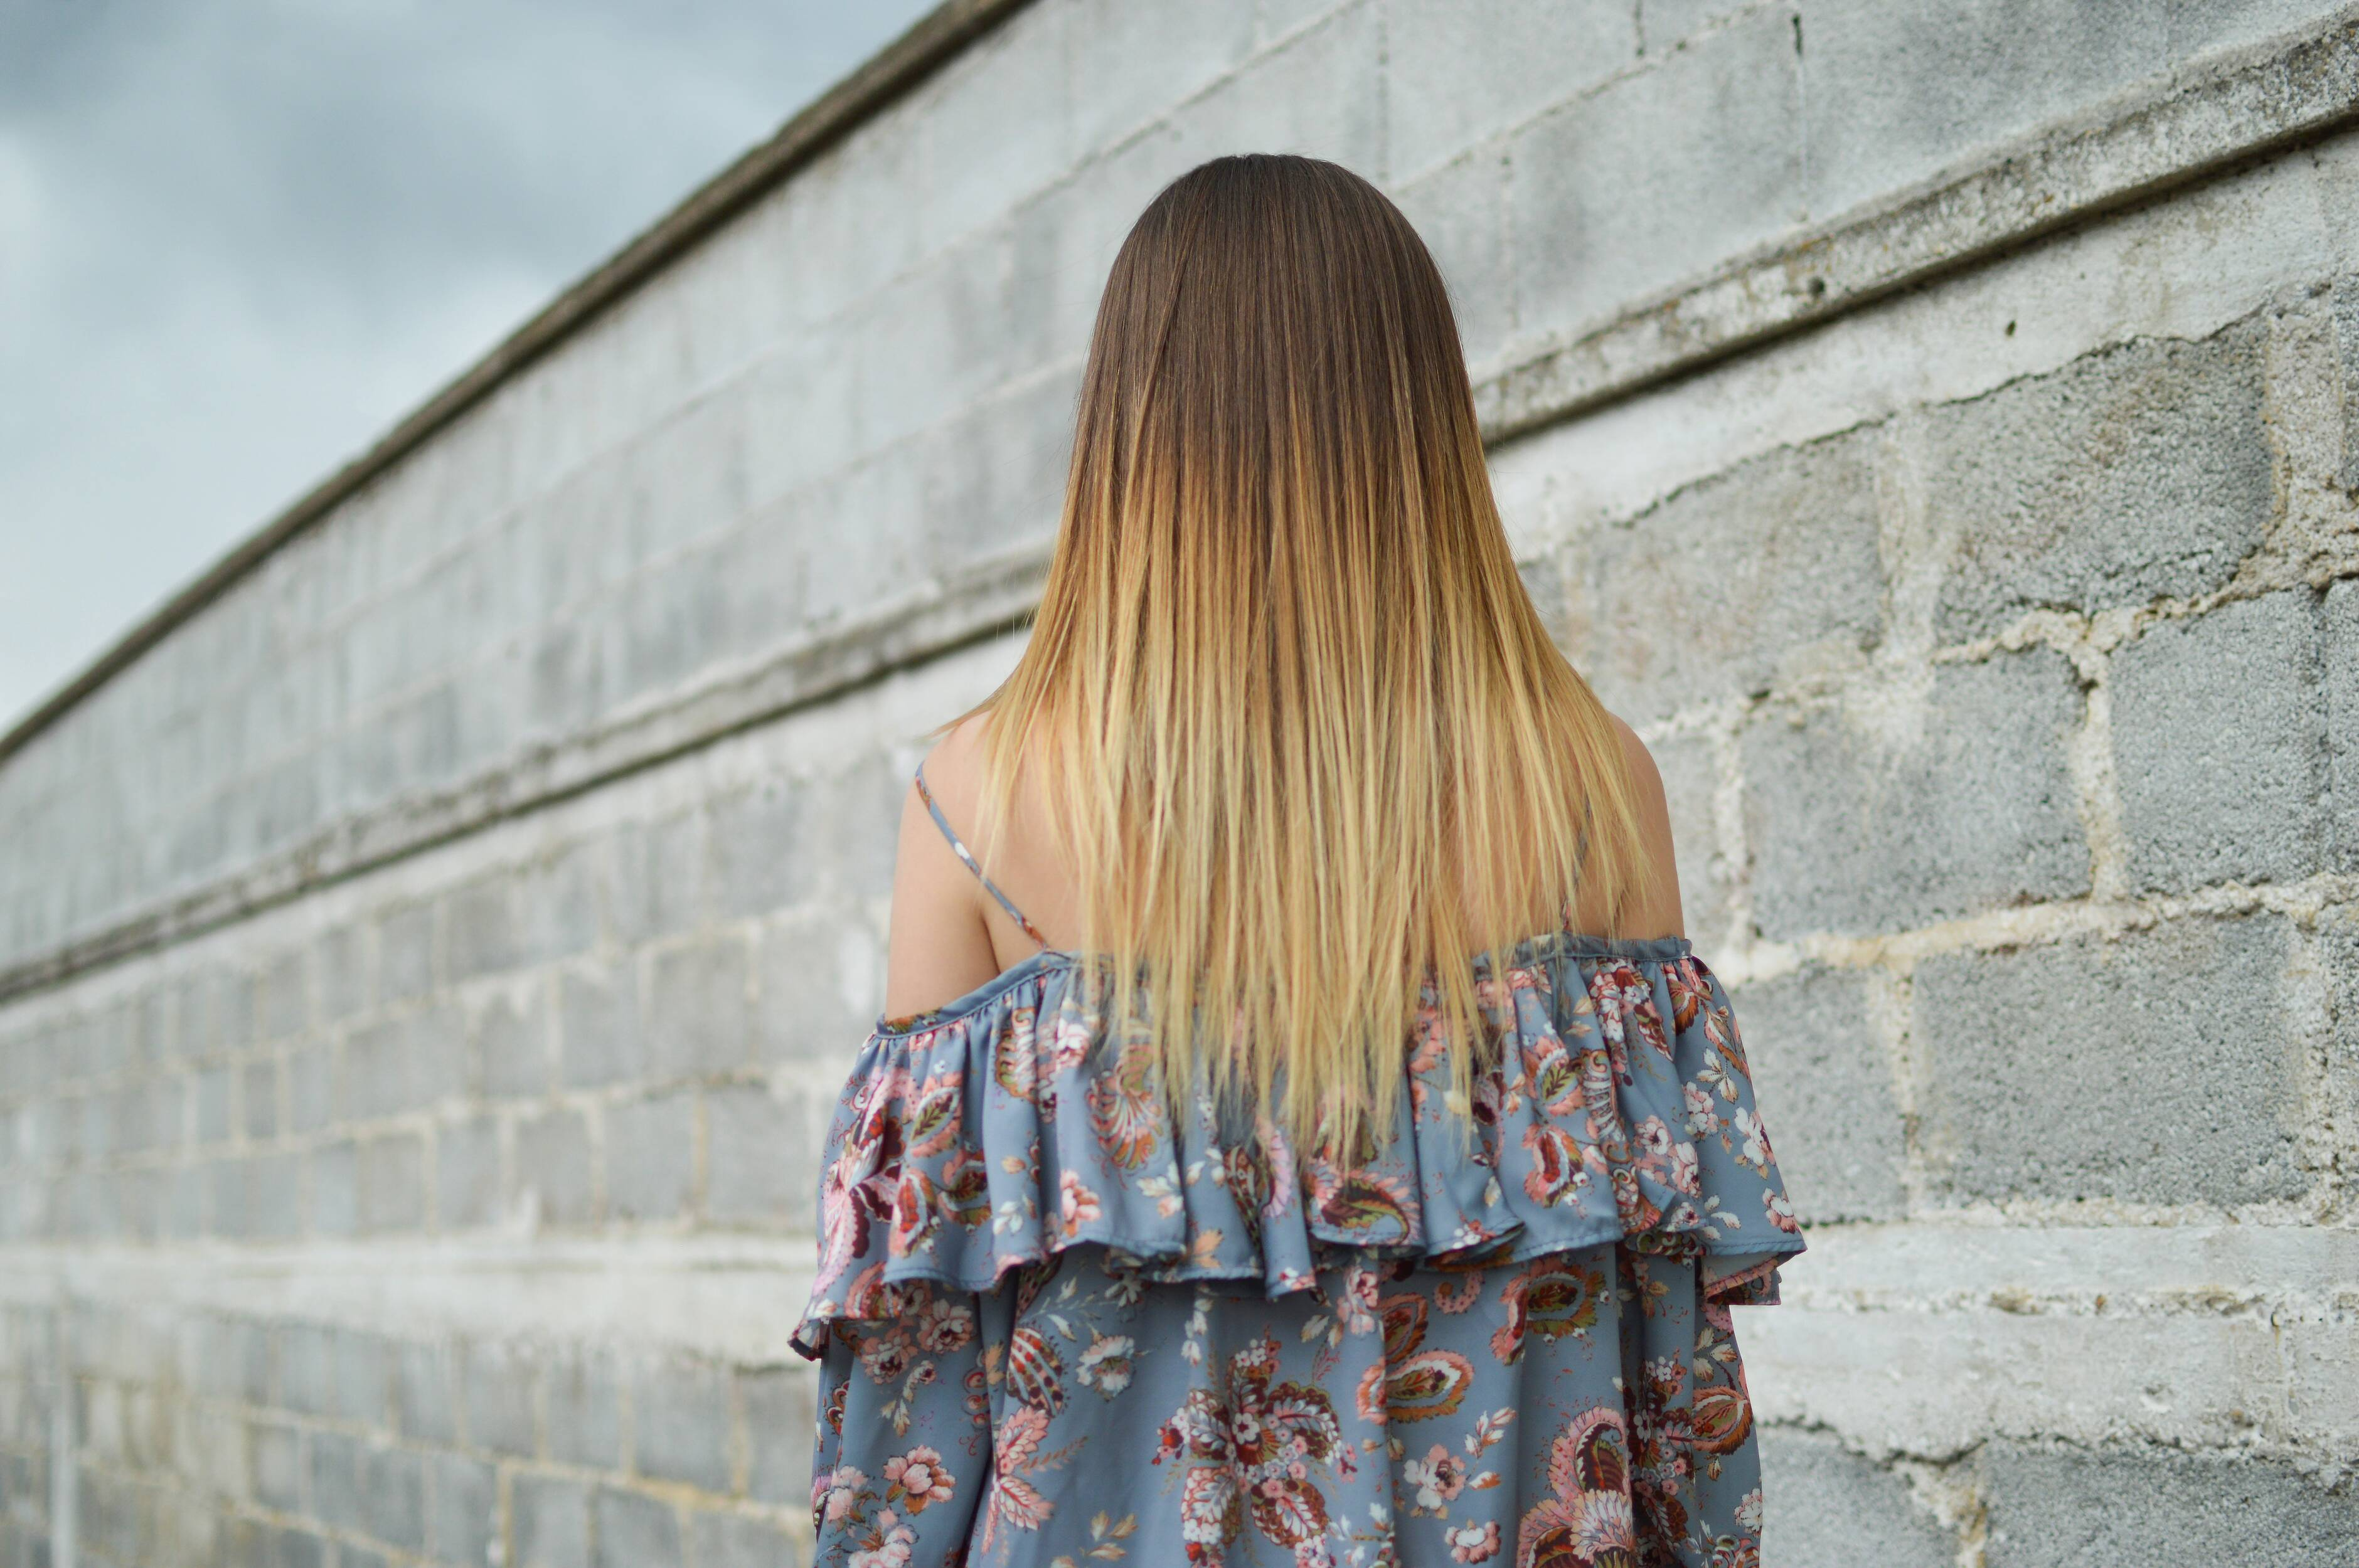 Brunette woman with blonde highlights a blue floral dress beside a stone wall under a gray sky - Ihr Frisör in Kastellaun – Hairpoint